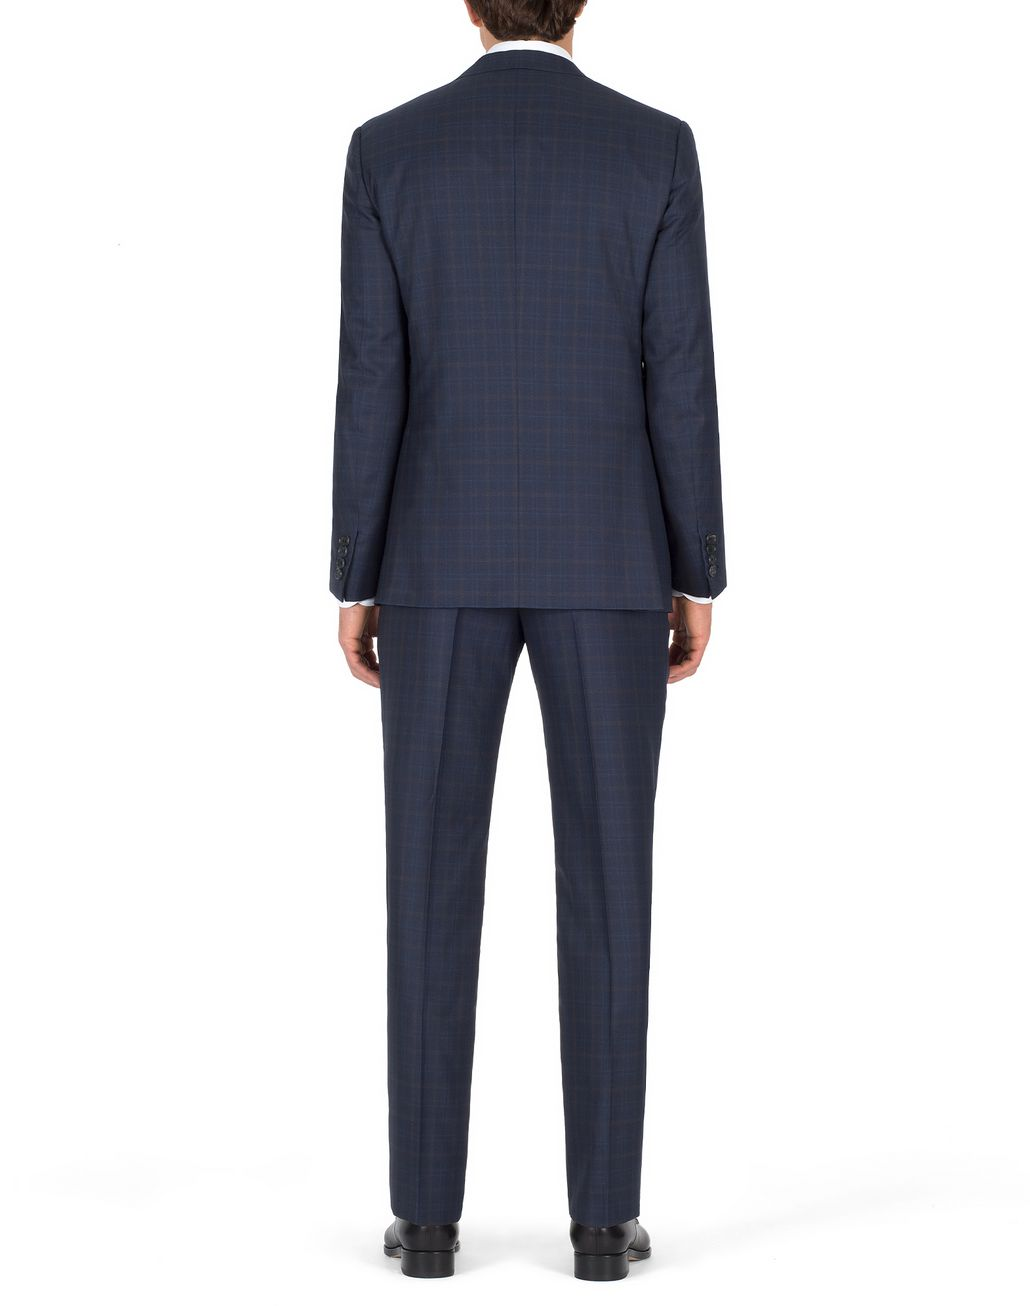 BRIONI Navy-Blue Subtle Check Brunico Suit Suits & Jackets Man d